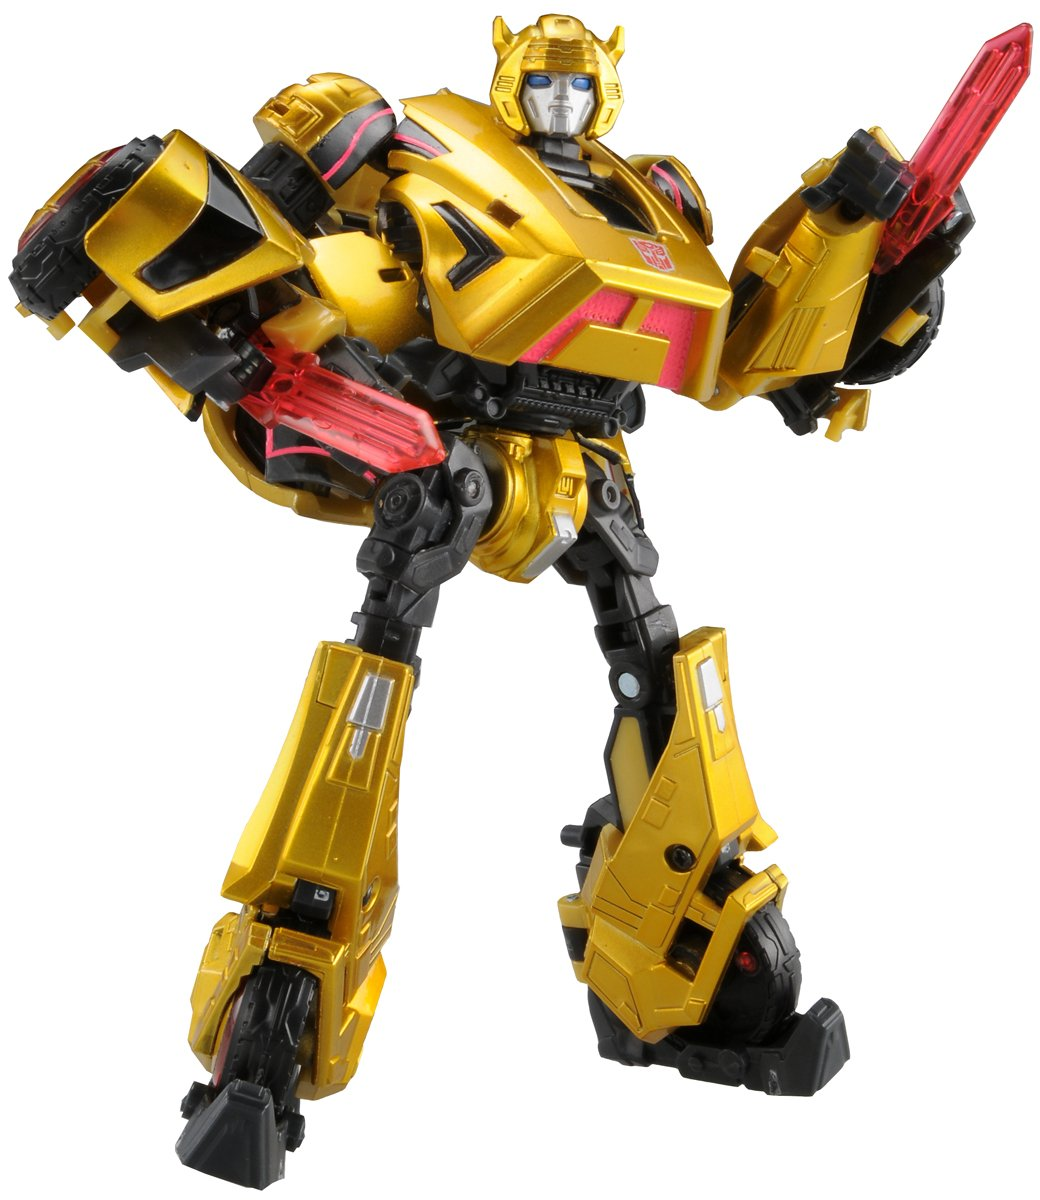 Transformer United UN02 Bumblebee Cybertron Mode